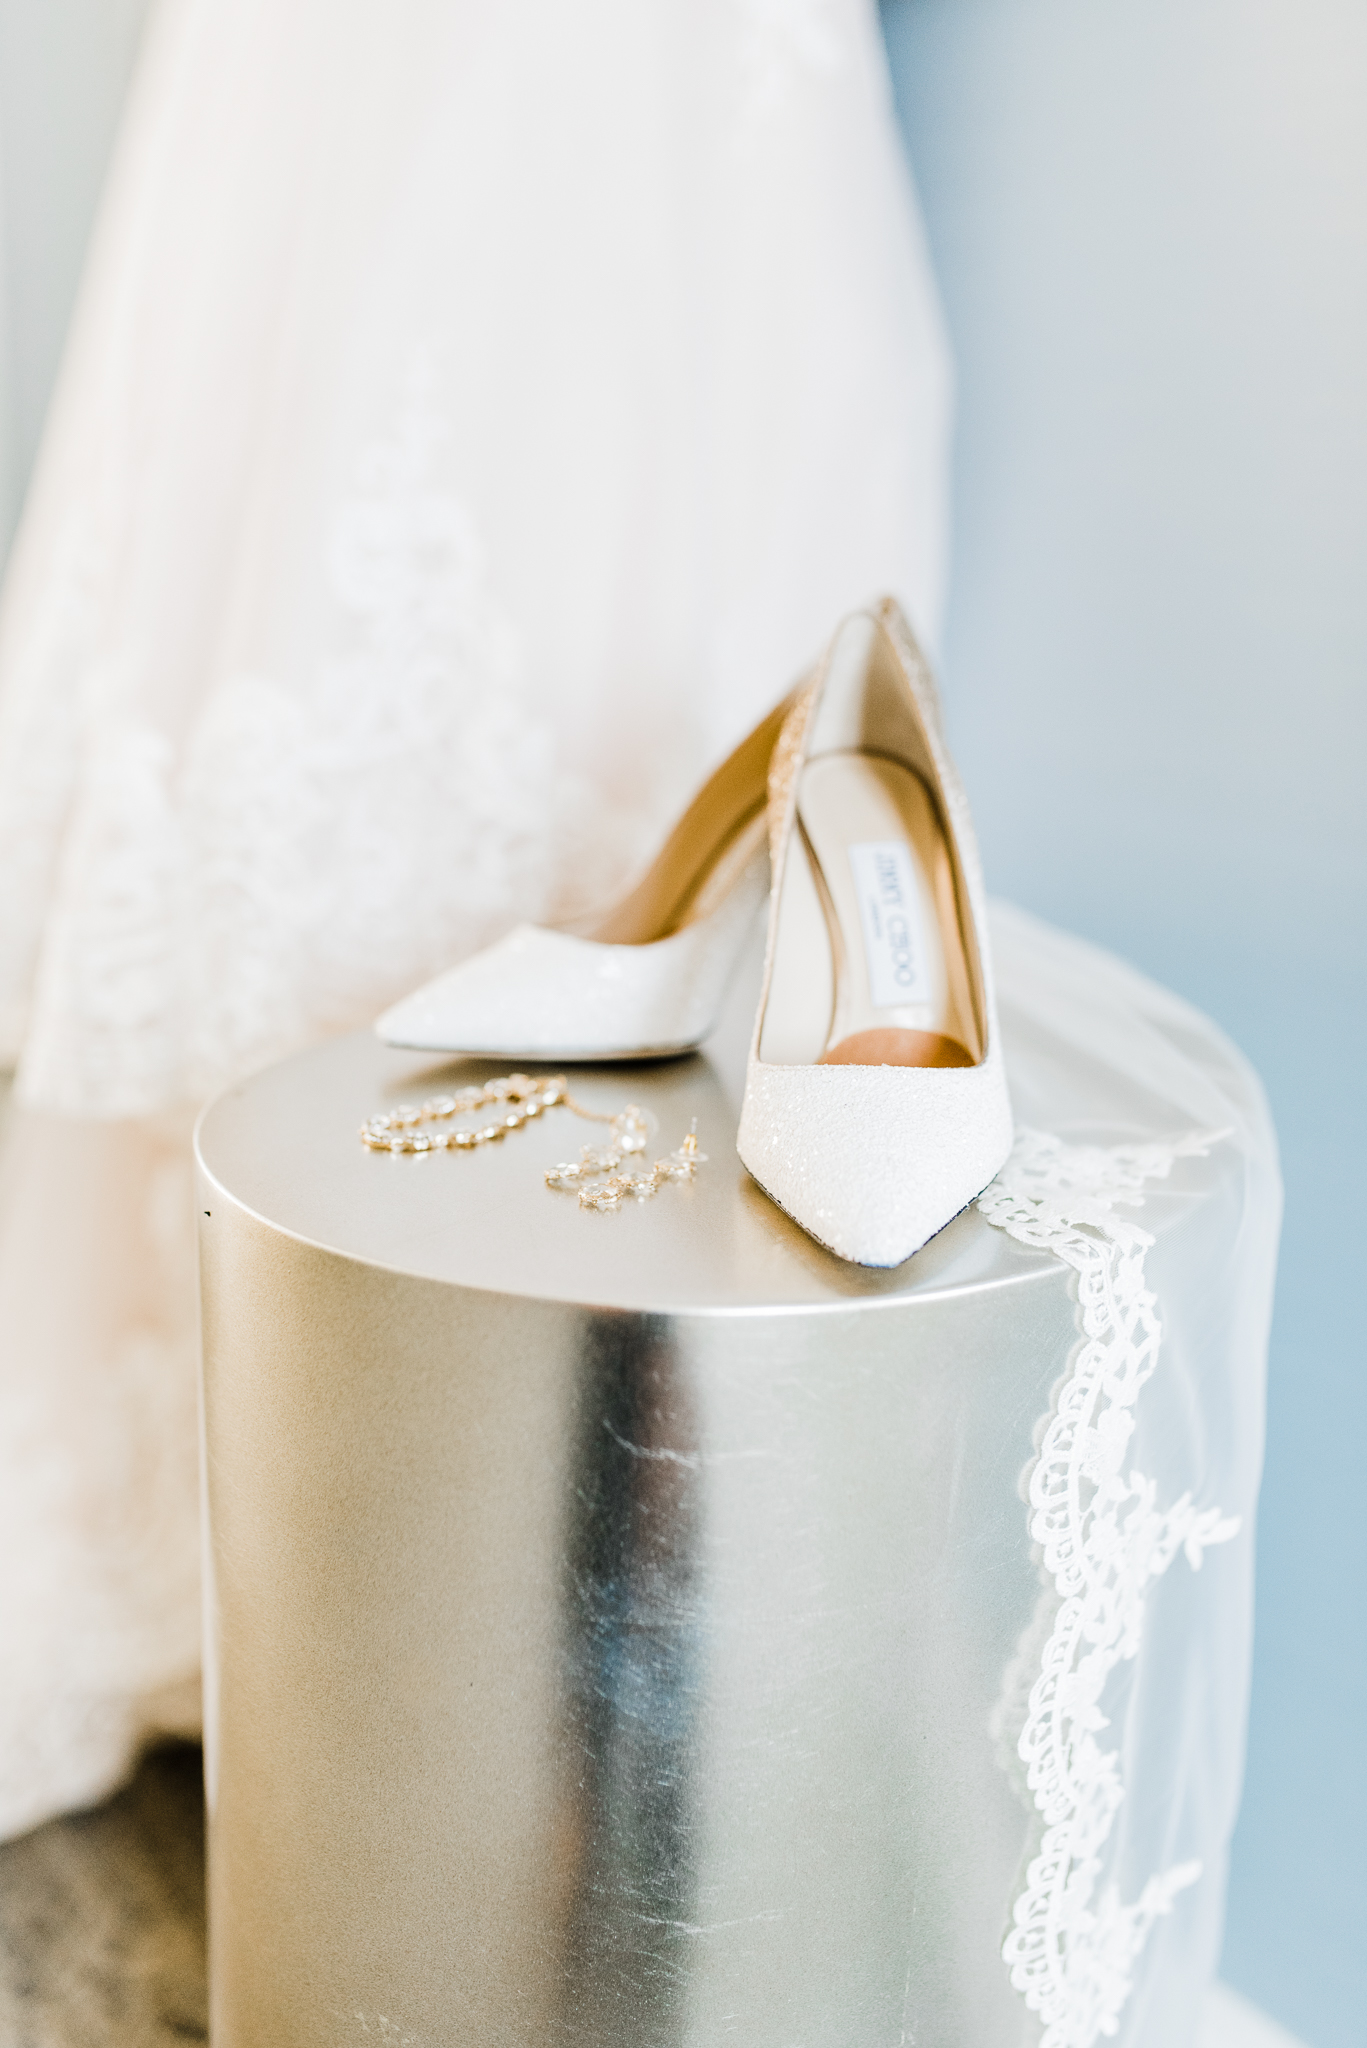 Jimmy choo Bridal Heels